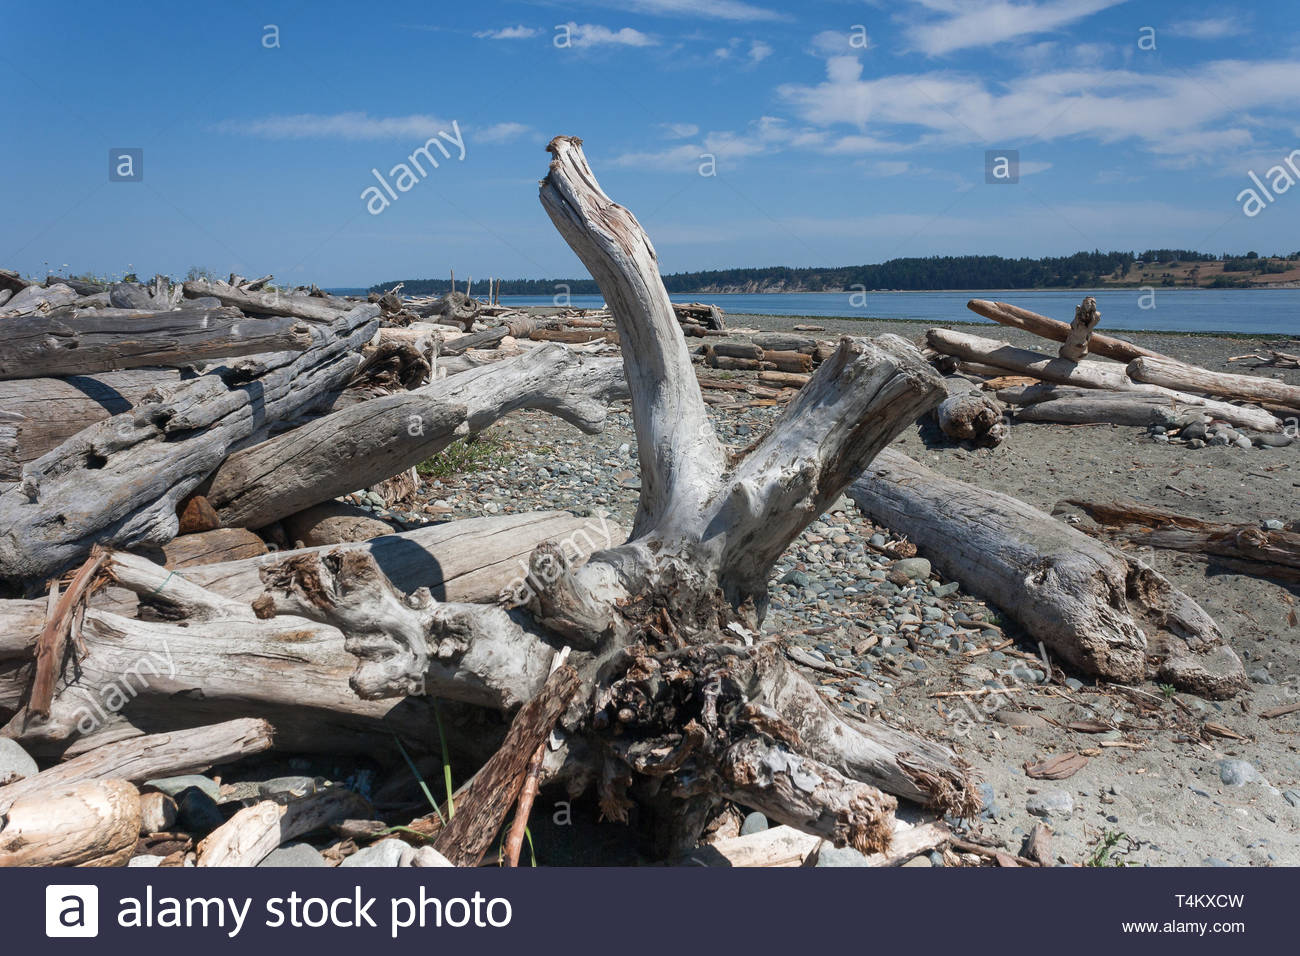 Driftwood washed ashore on Island View Beach on Vancouver Island, British Columbia, Canada - Stock Image